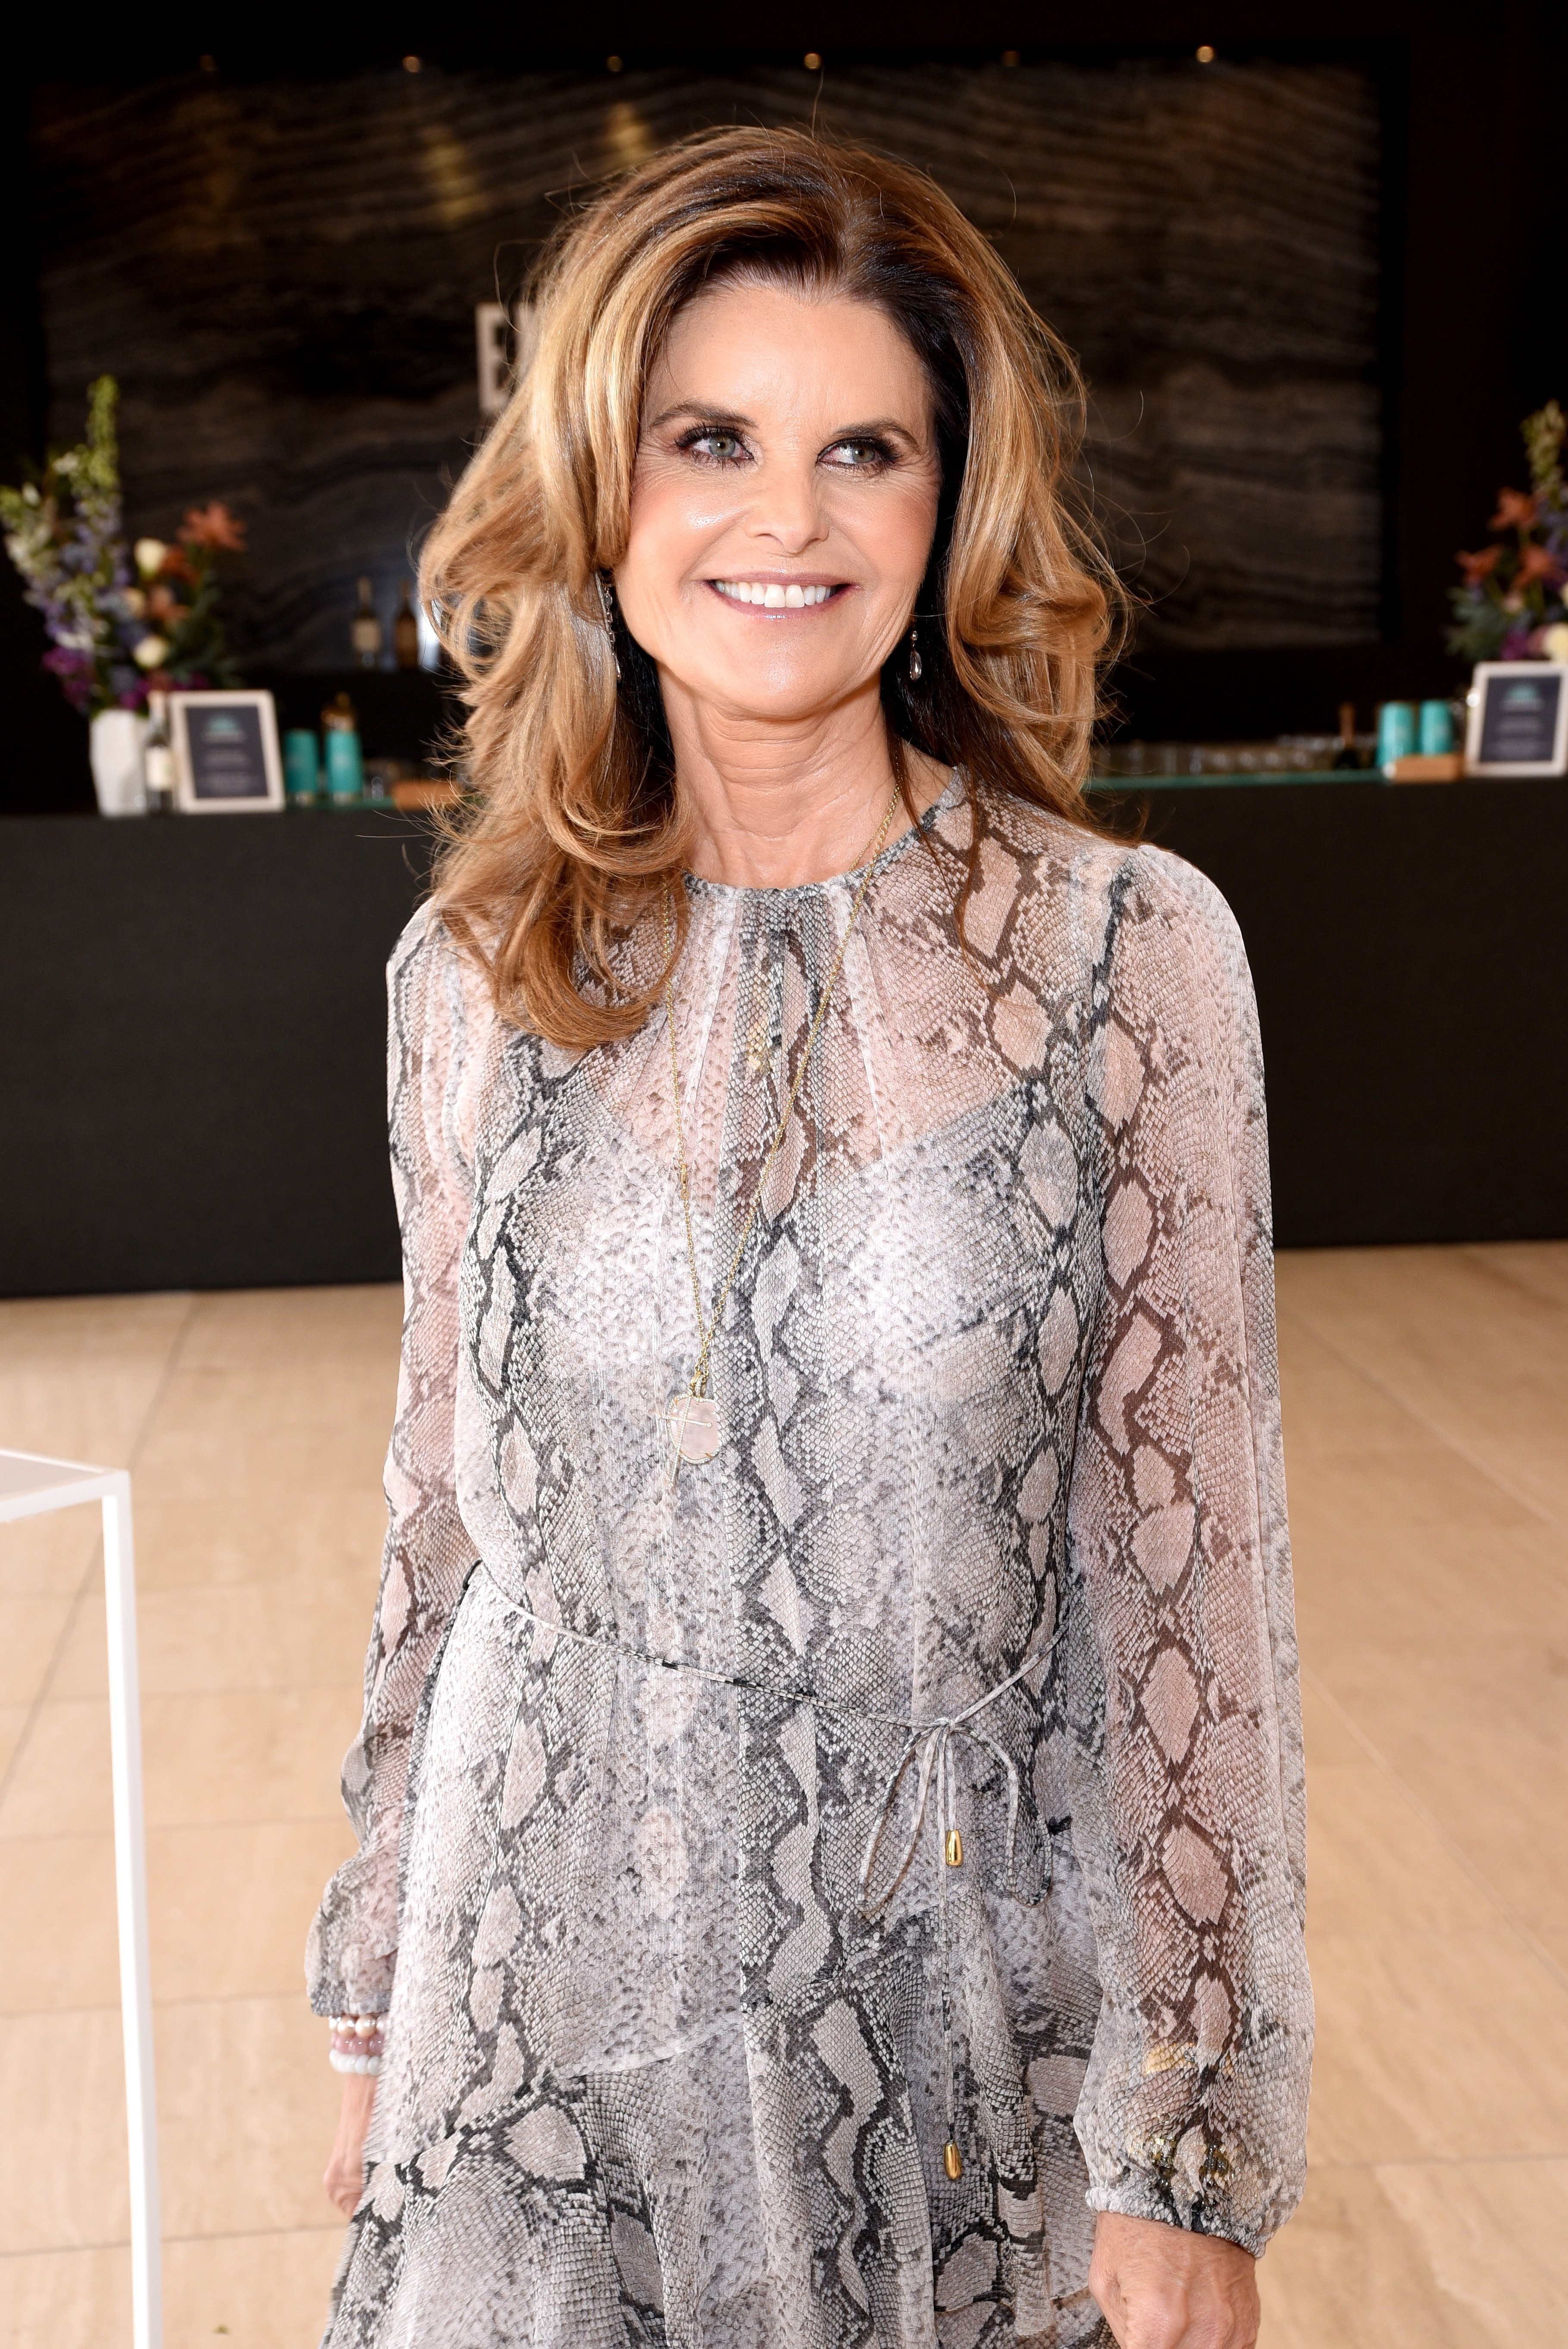 Image Credits: Getty Images / Presley Ann | Maria Shriver attends The Hollywood Reporter's Empowerment In Entertainment Event 2019 at Milk Studios on April 30, 2019 in Los Angeles, California.